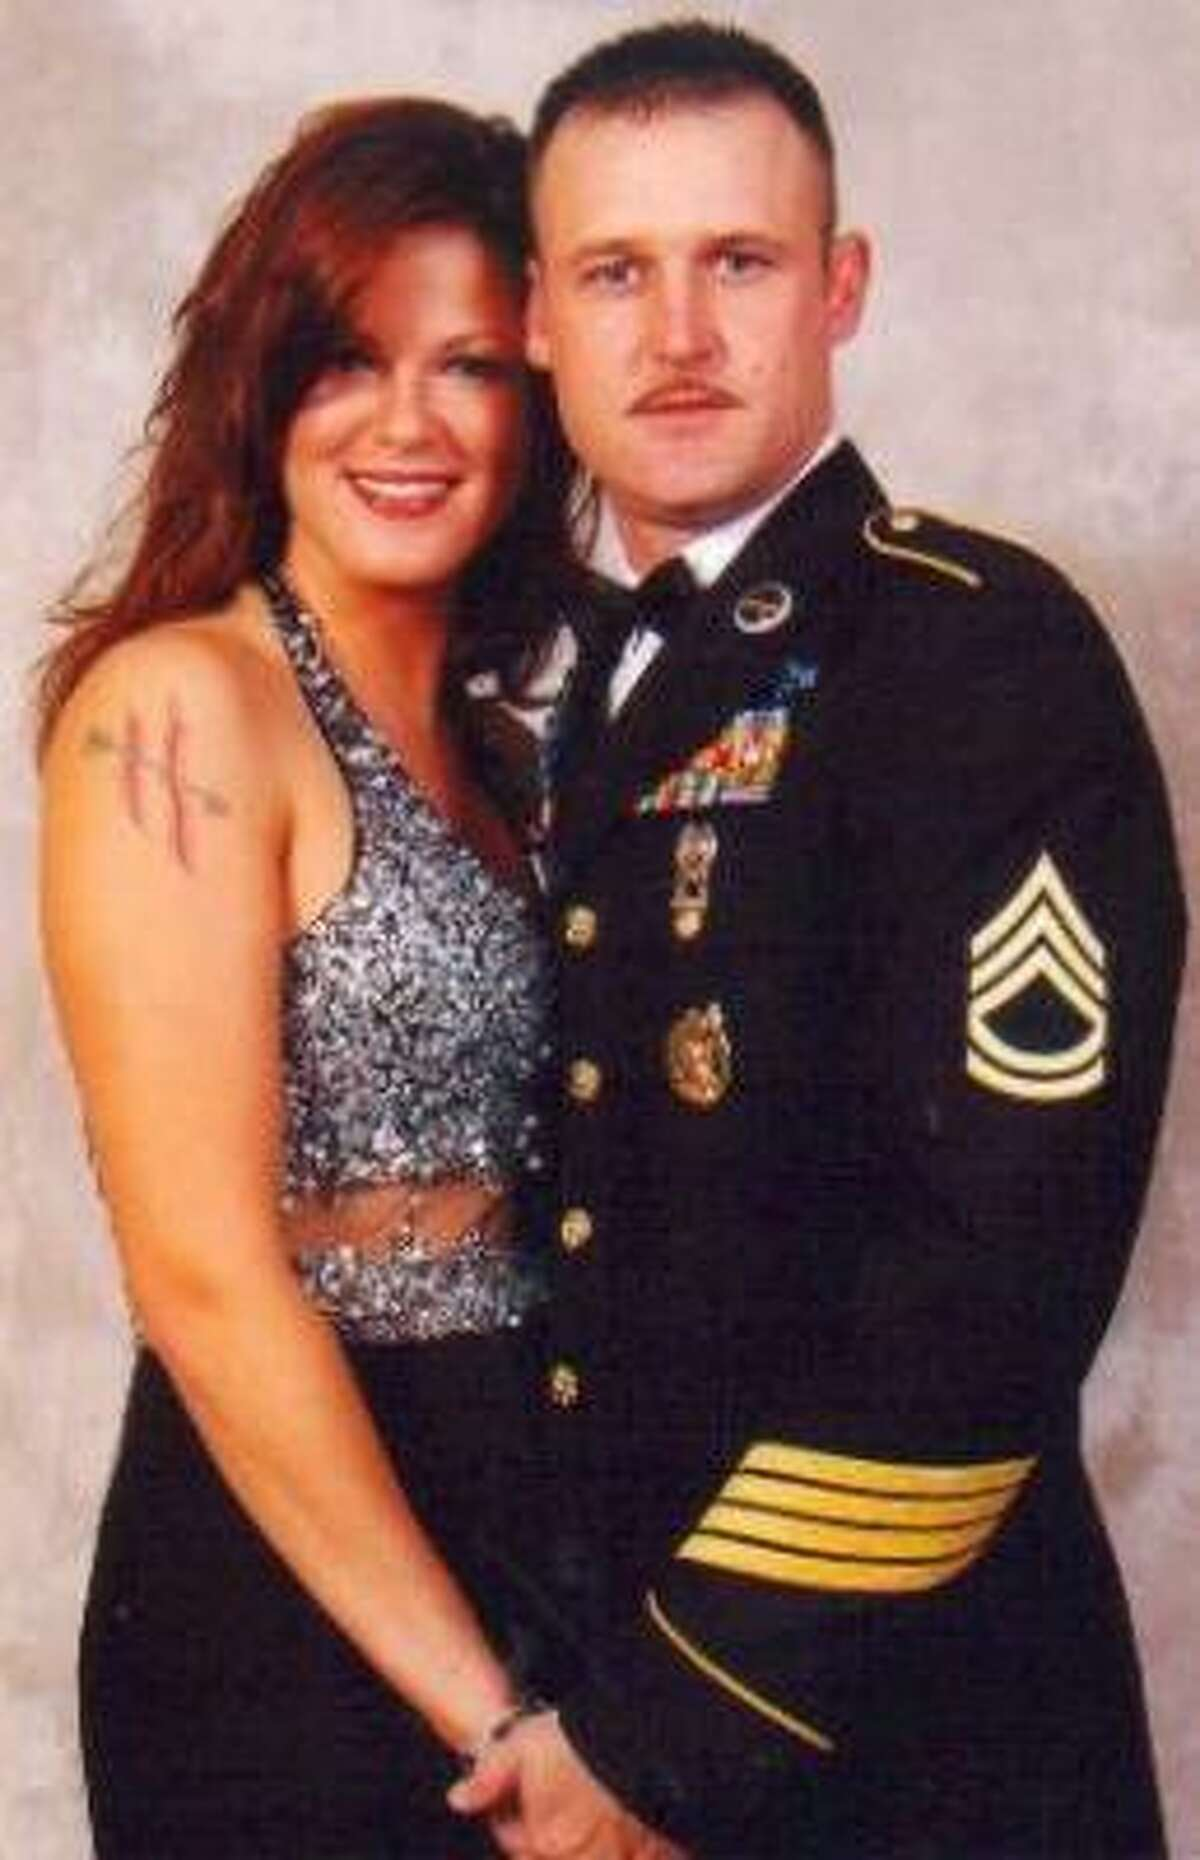 Sgt. First Class Patrick Henderson and his wife, Staff Sgt. Amanda Henderson, were both Army recruiters.